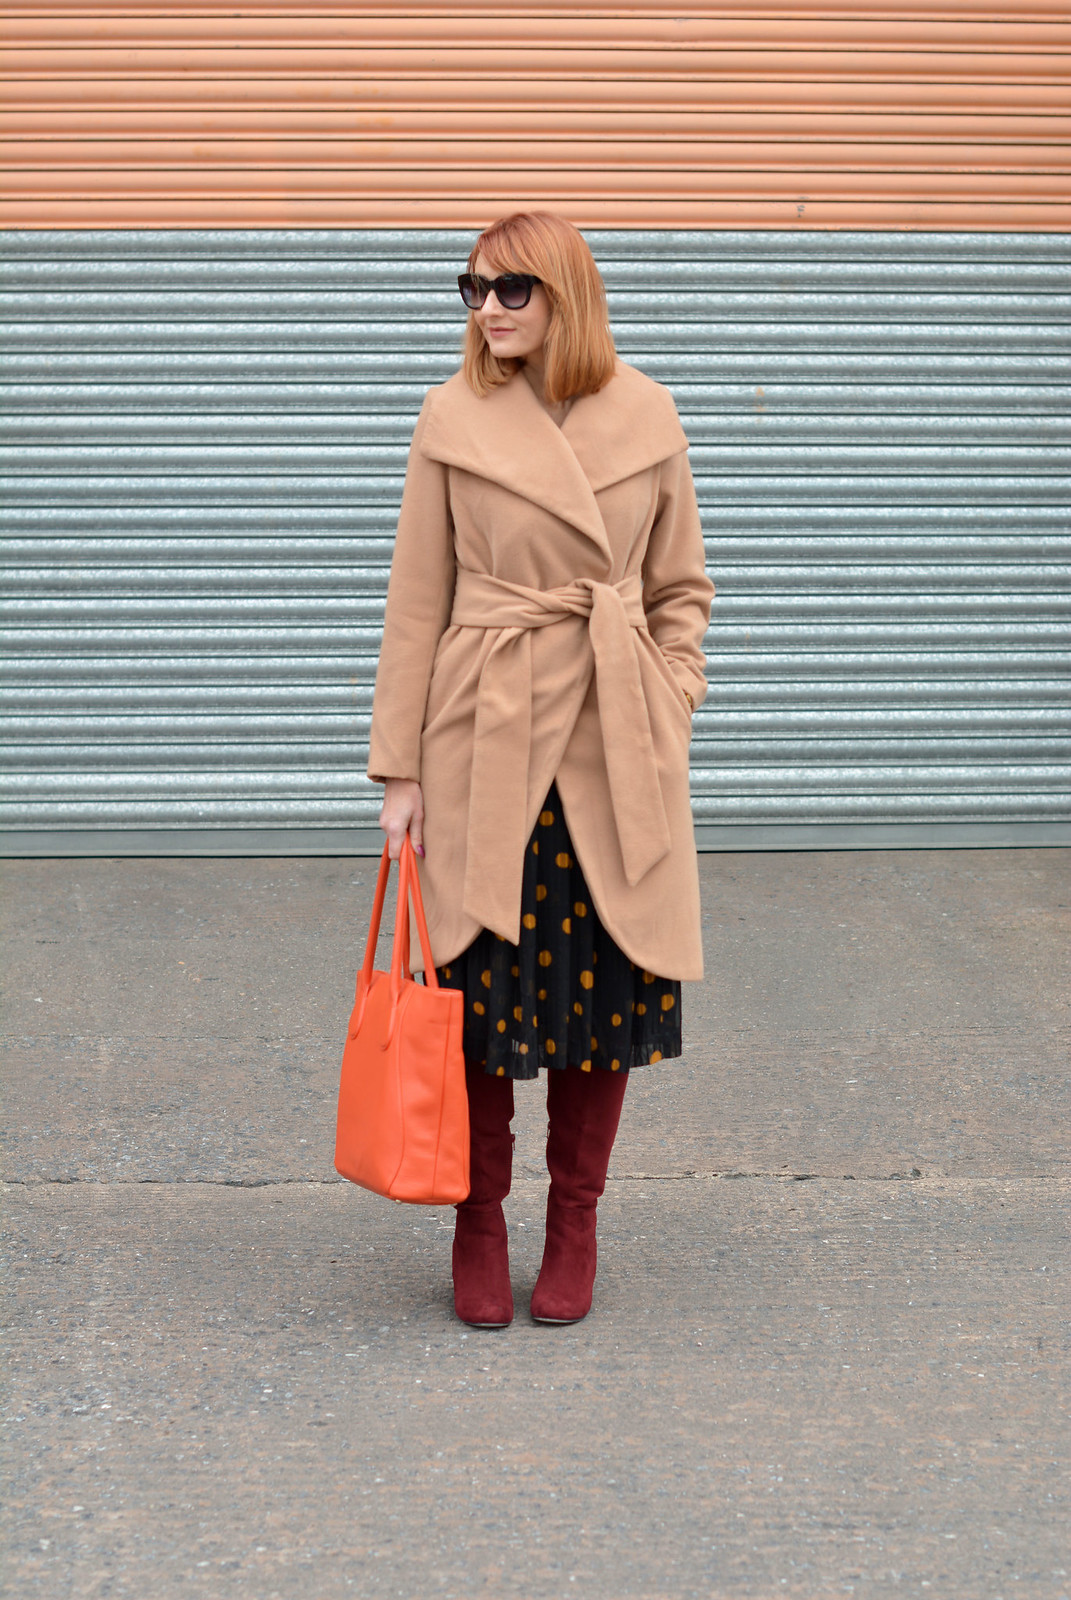 Camel wrap coat, vintage 70s polka dots dress, burgundy boots, orange tote | Not Dressed As Lamb